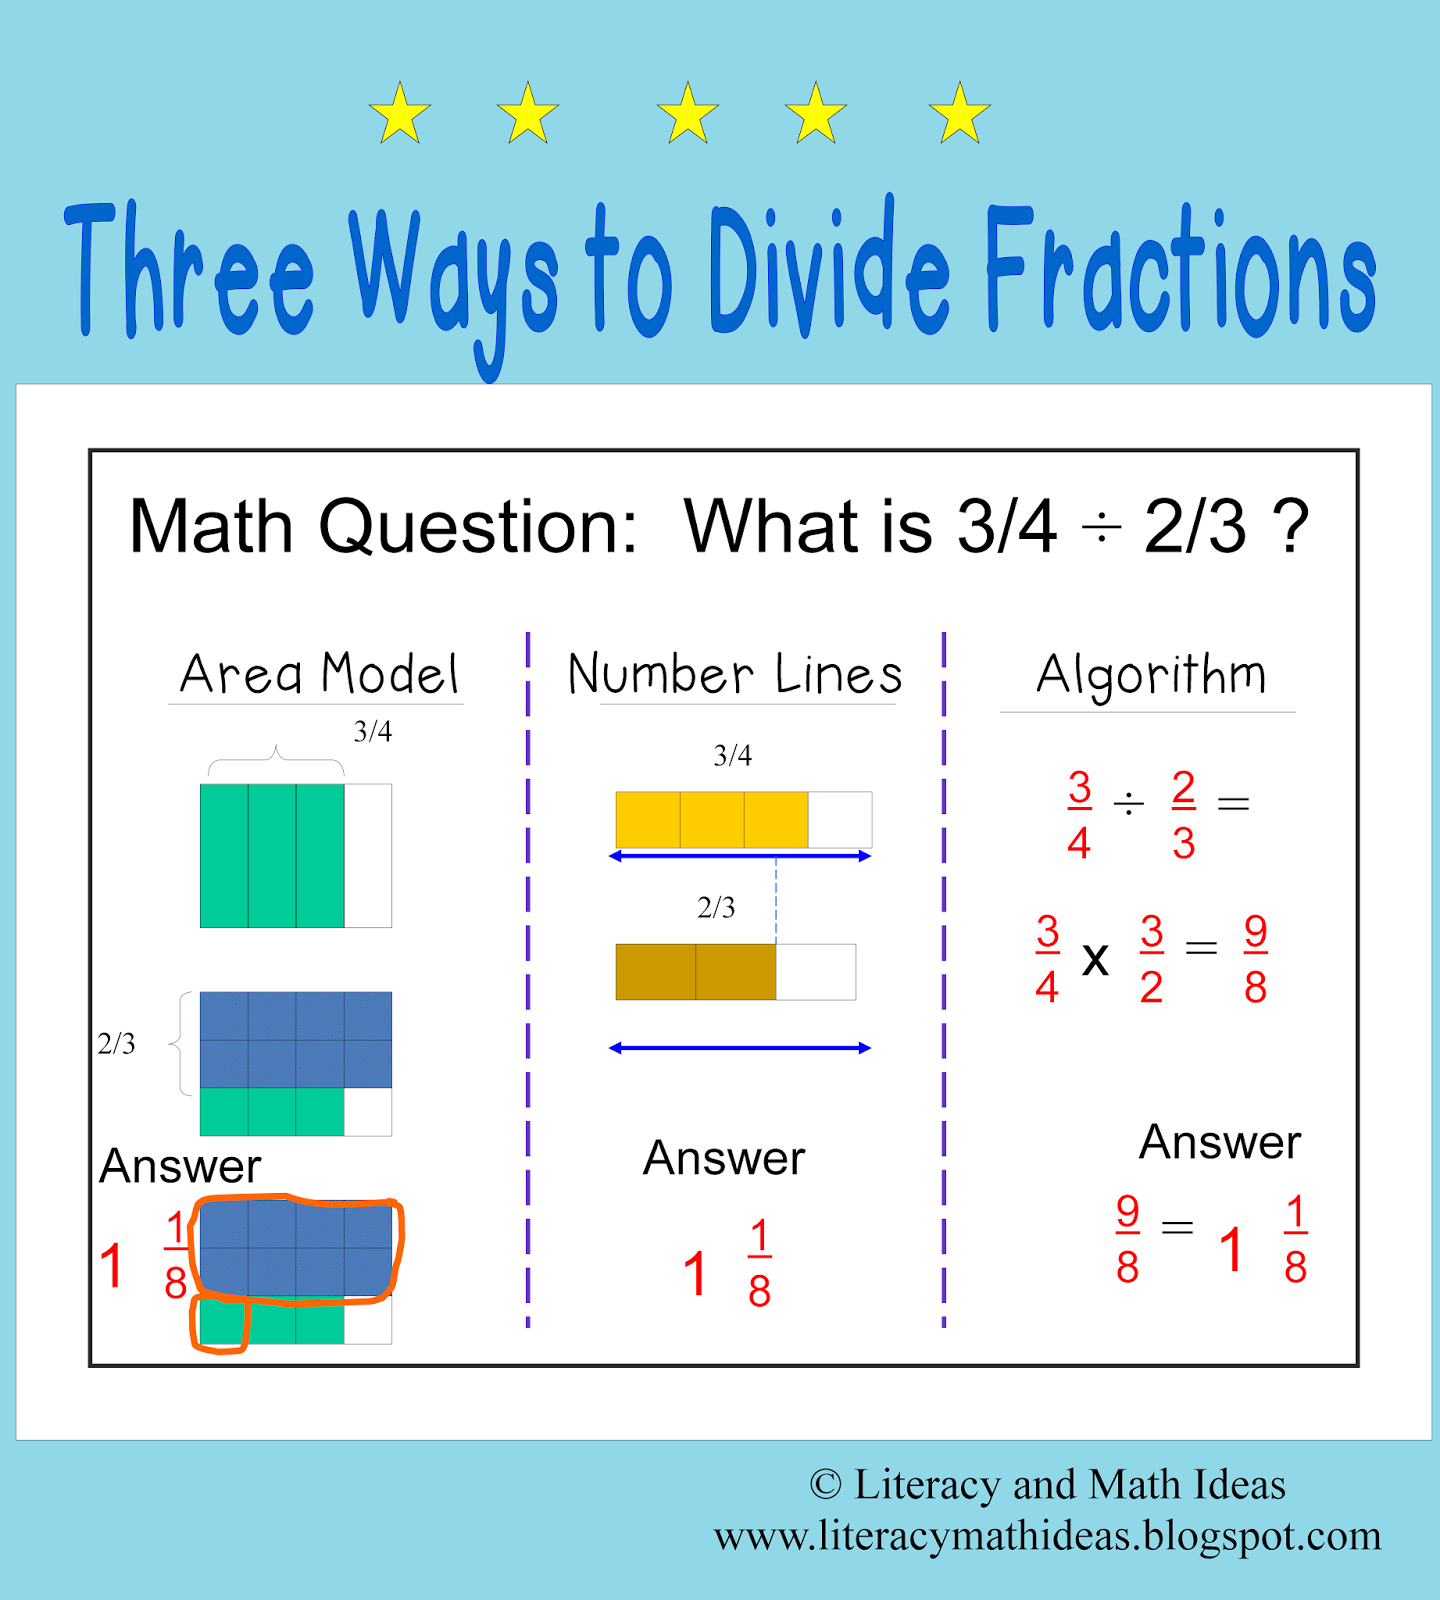 Literacy & Math Ideas: Three Ways to Divide Fractions ...